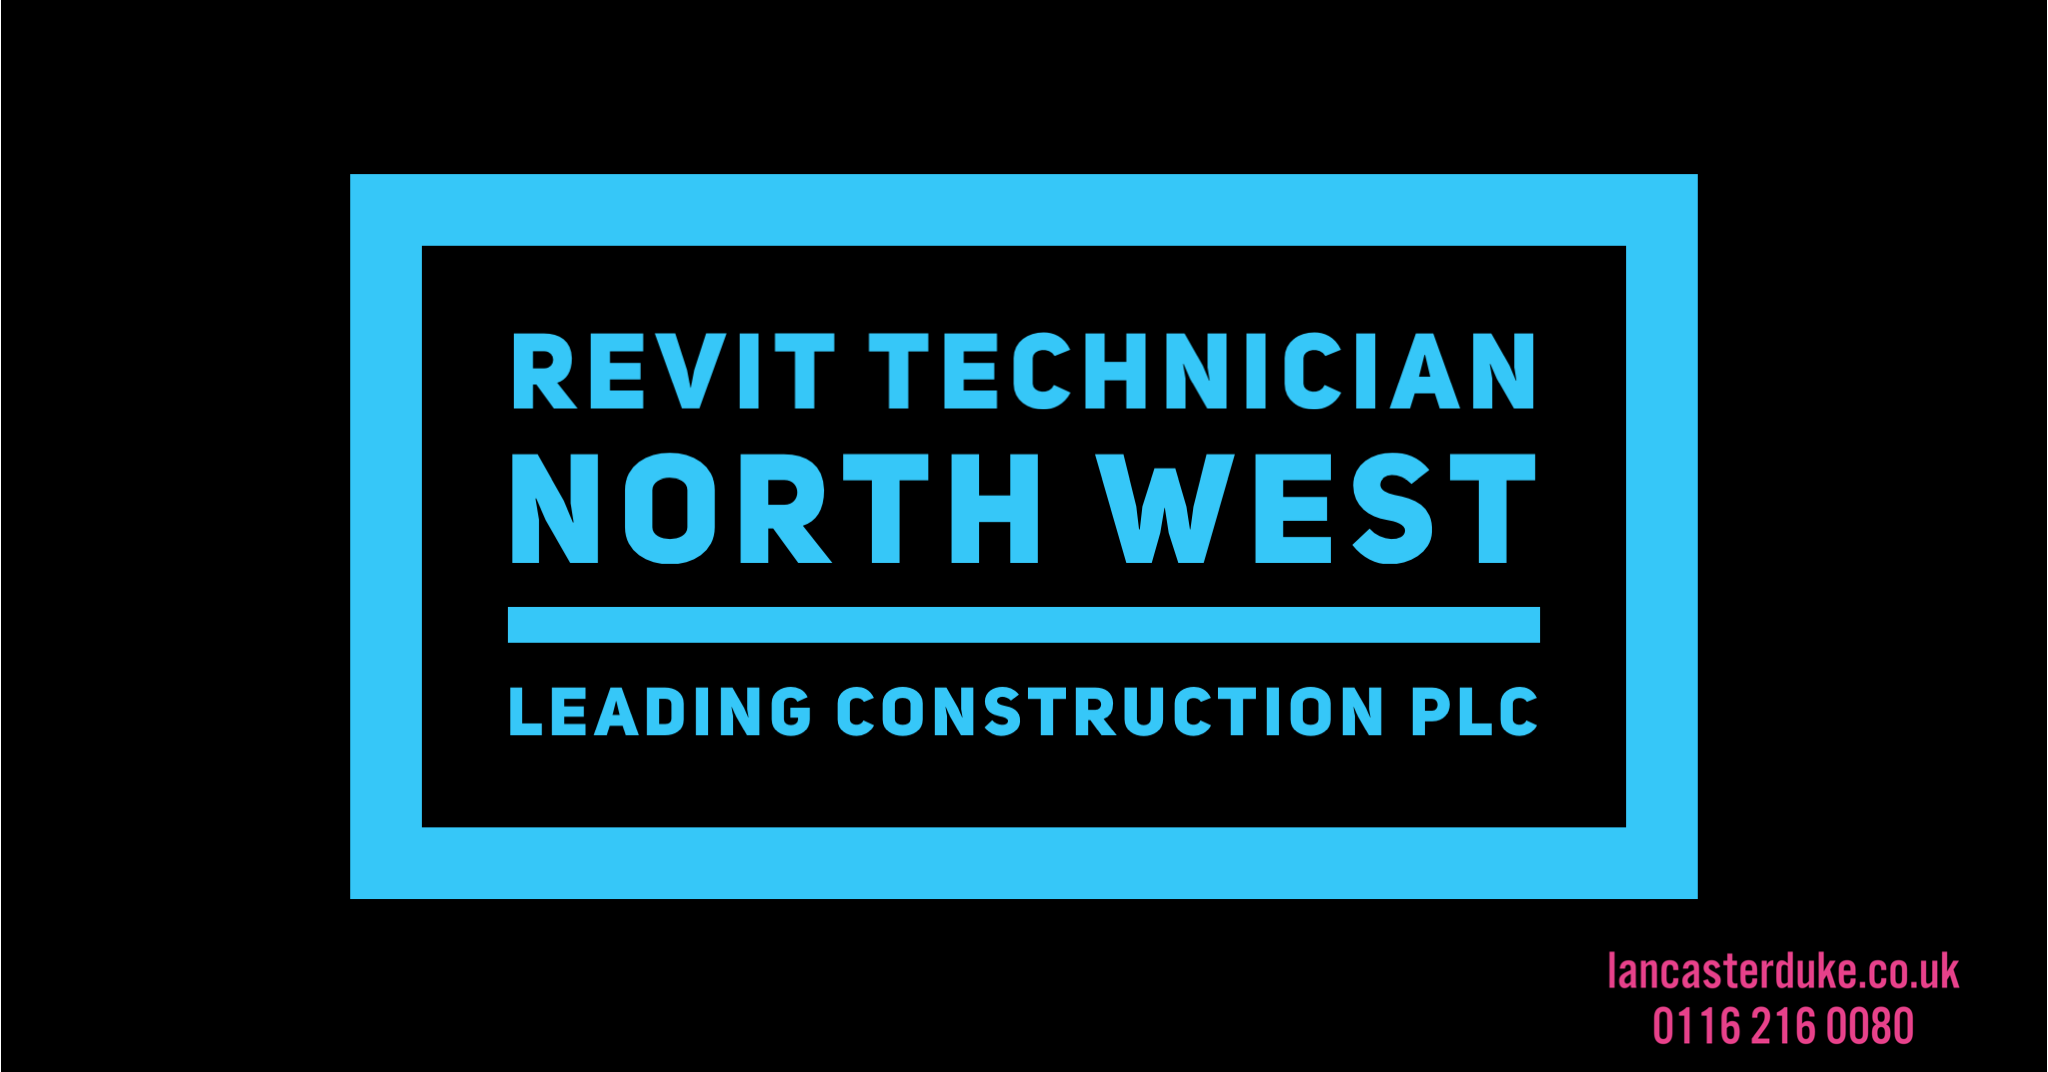 Revit Technician